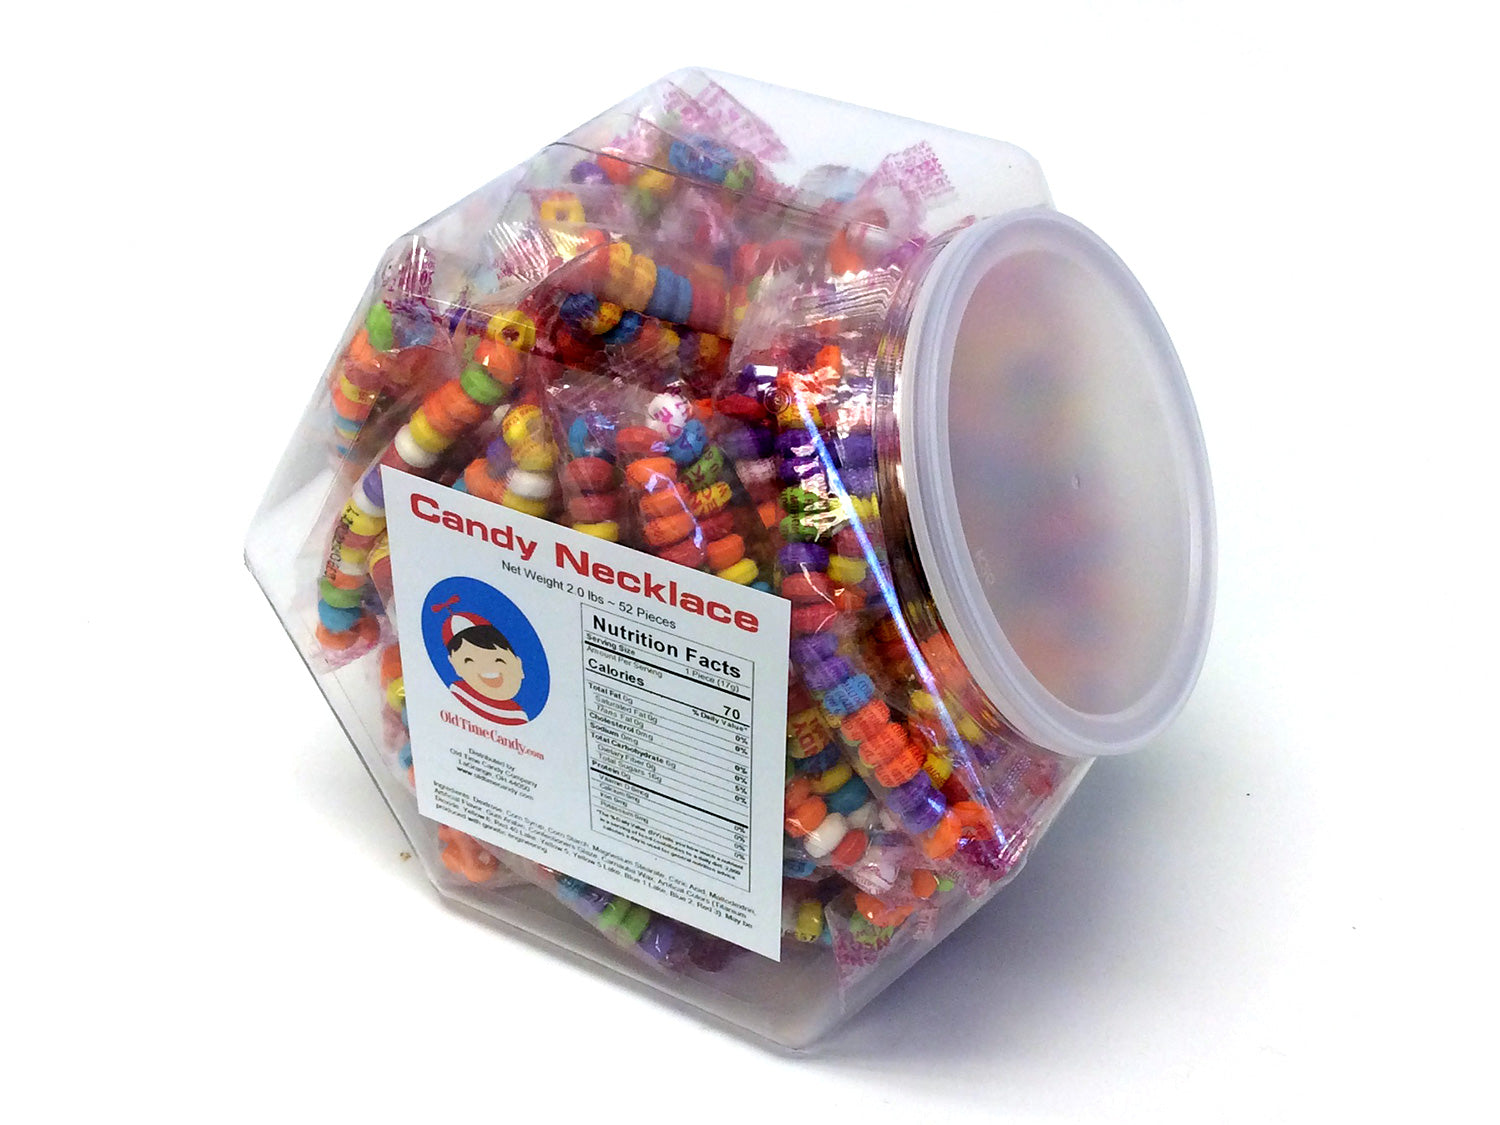 Candy Necklace - wrapped - plastic tub of 52